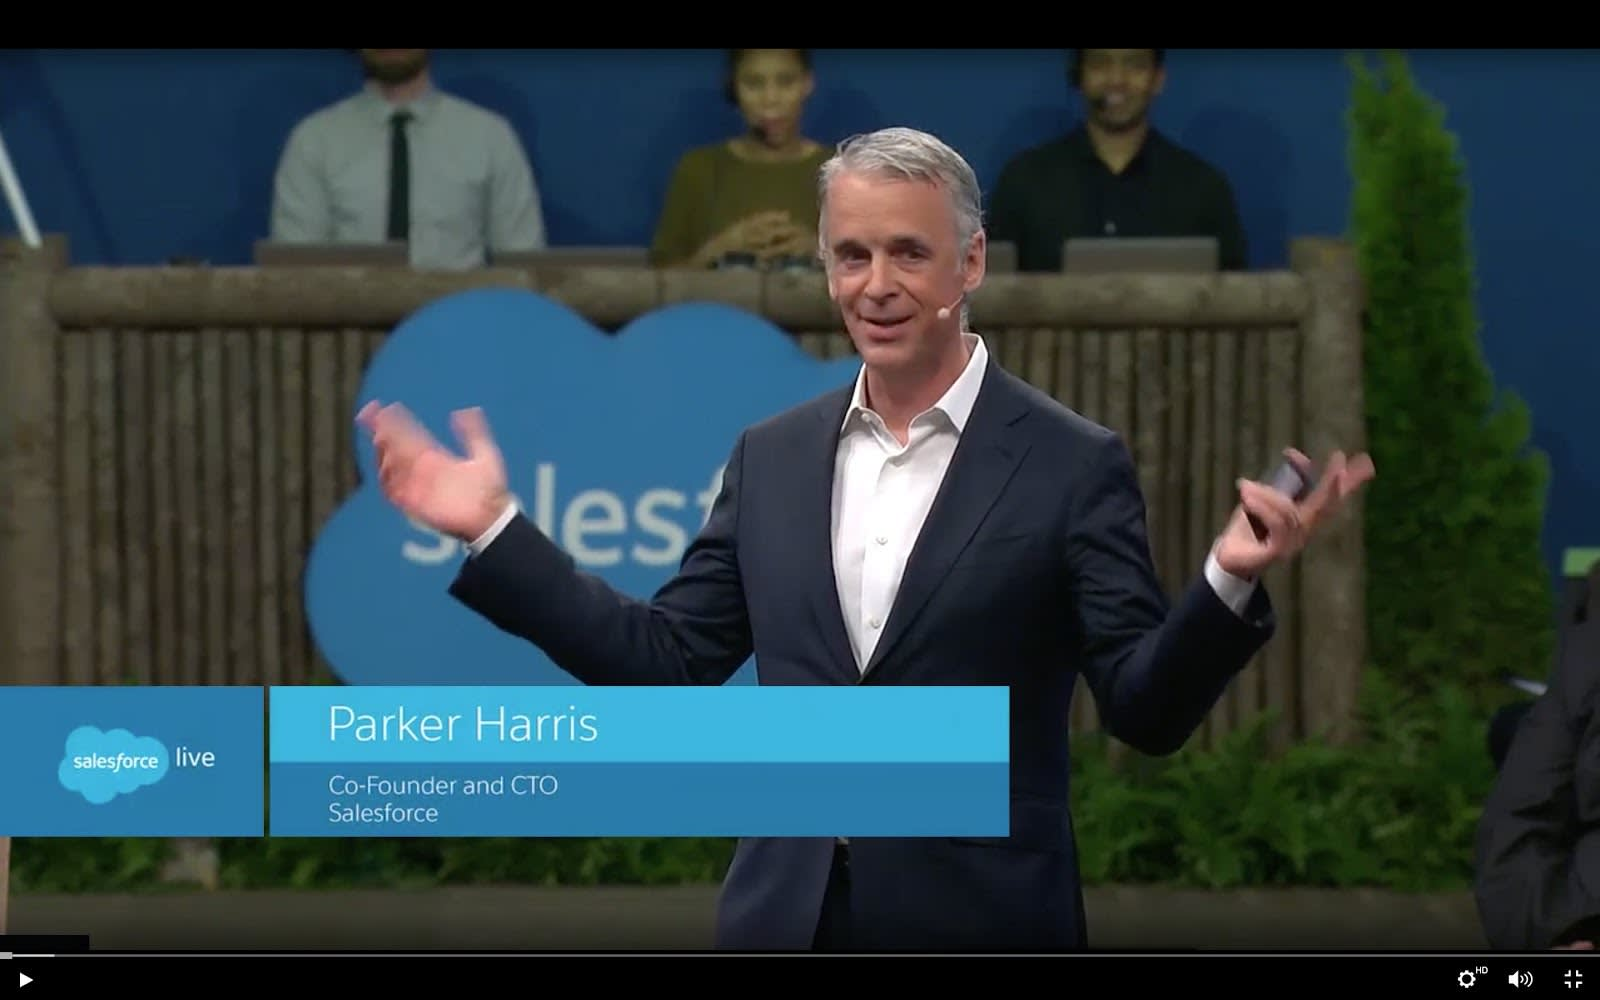 Salesforce联合创始人兼首席技术官Parker Harris出席Dreamforce。